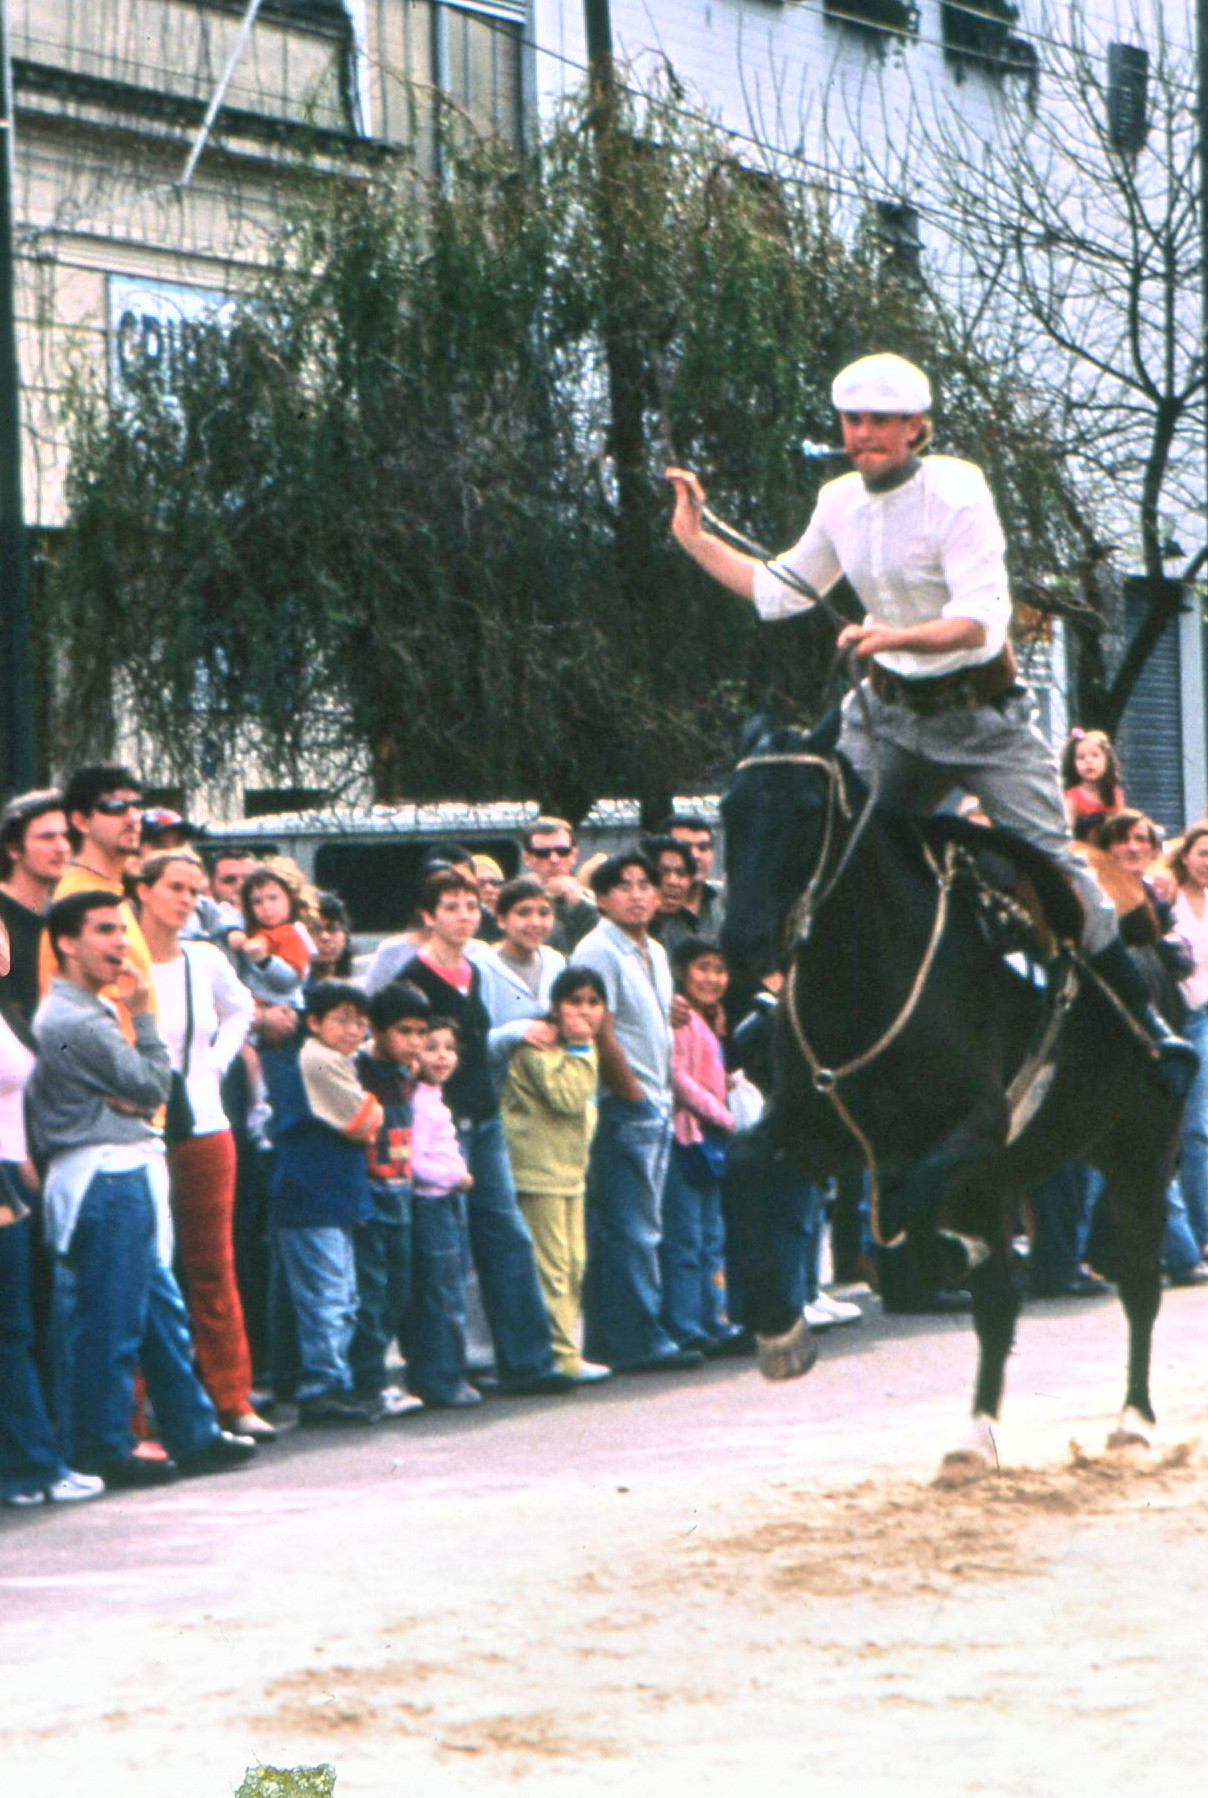 Gauchos demonstrate skills they use every day on the great estancias.